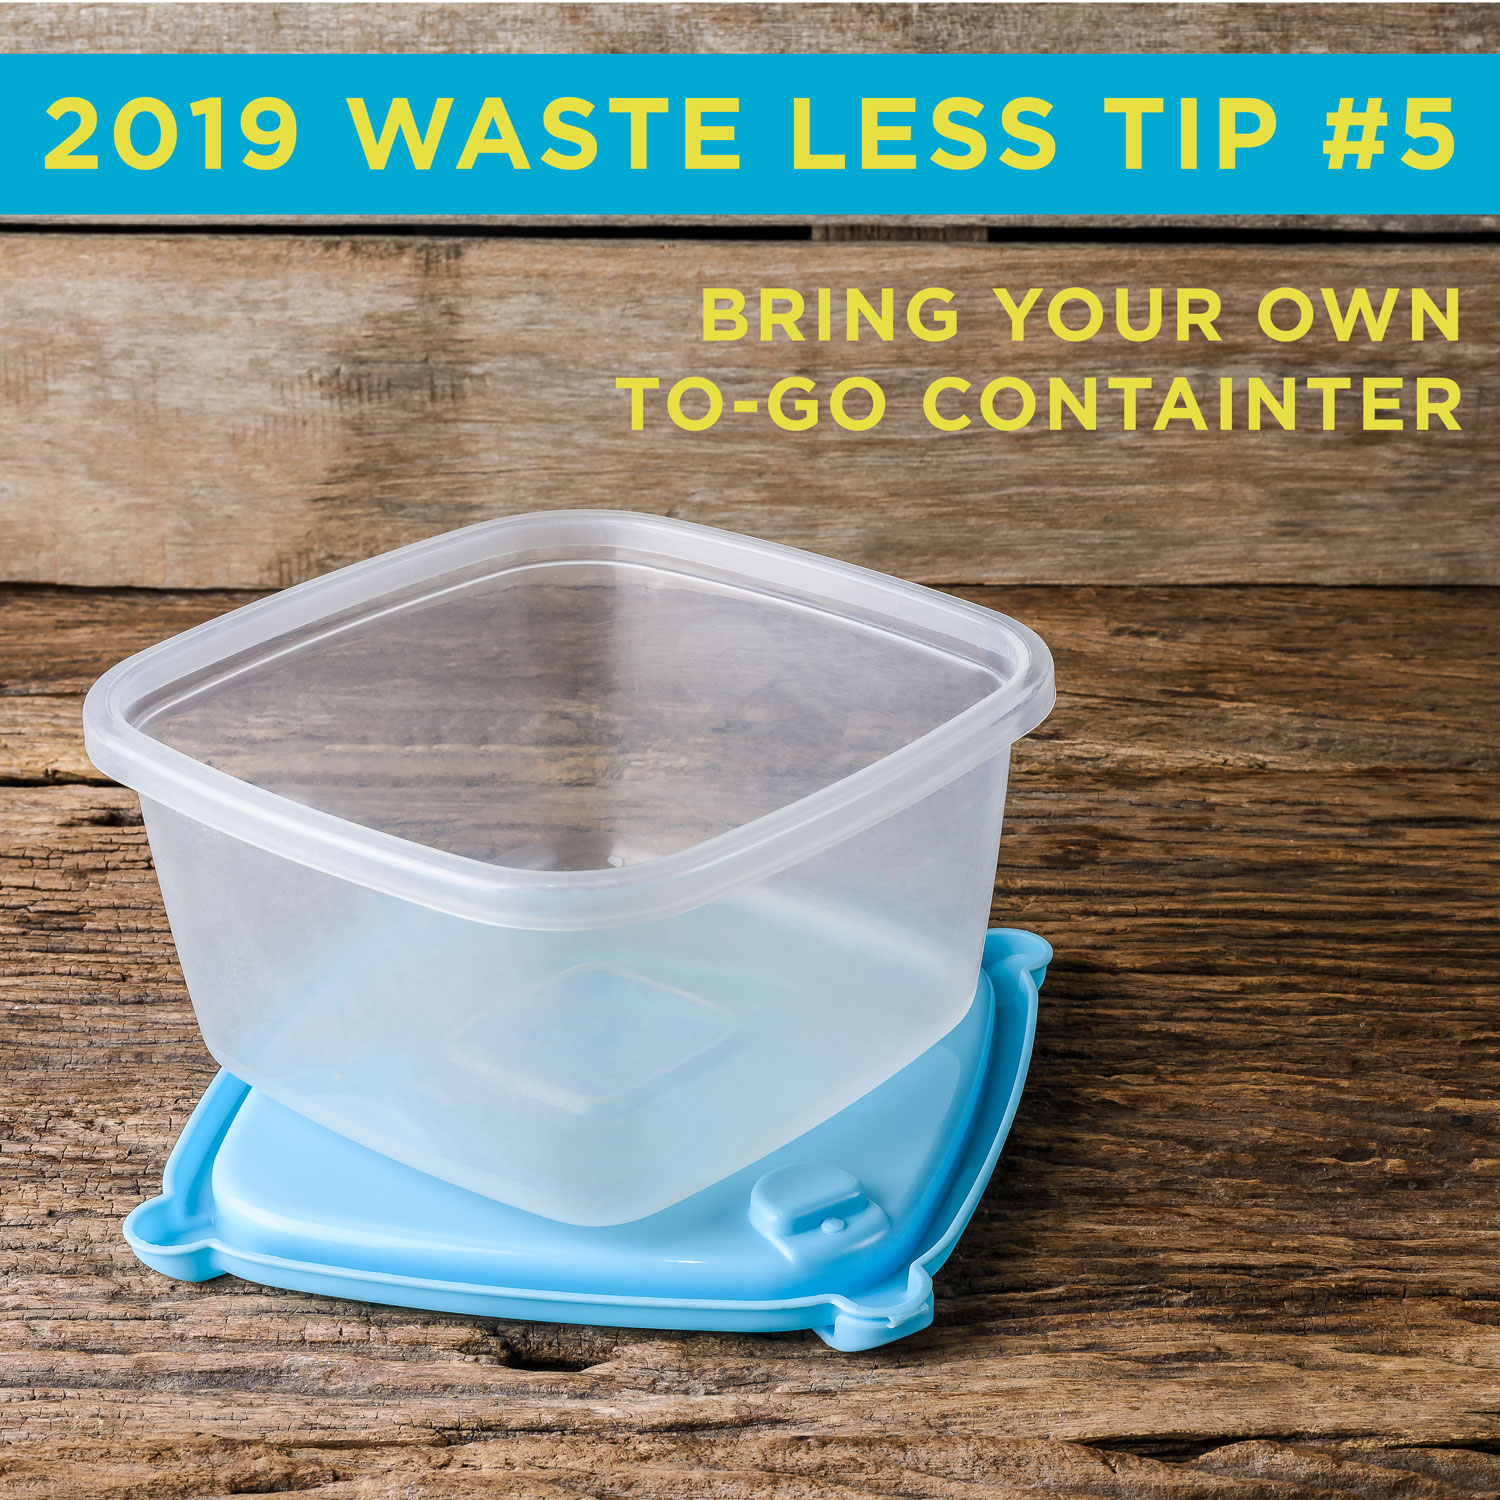 Environmentally friendly tip 6 is bring your own to go container